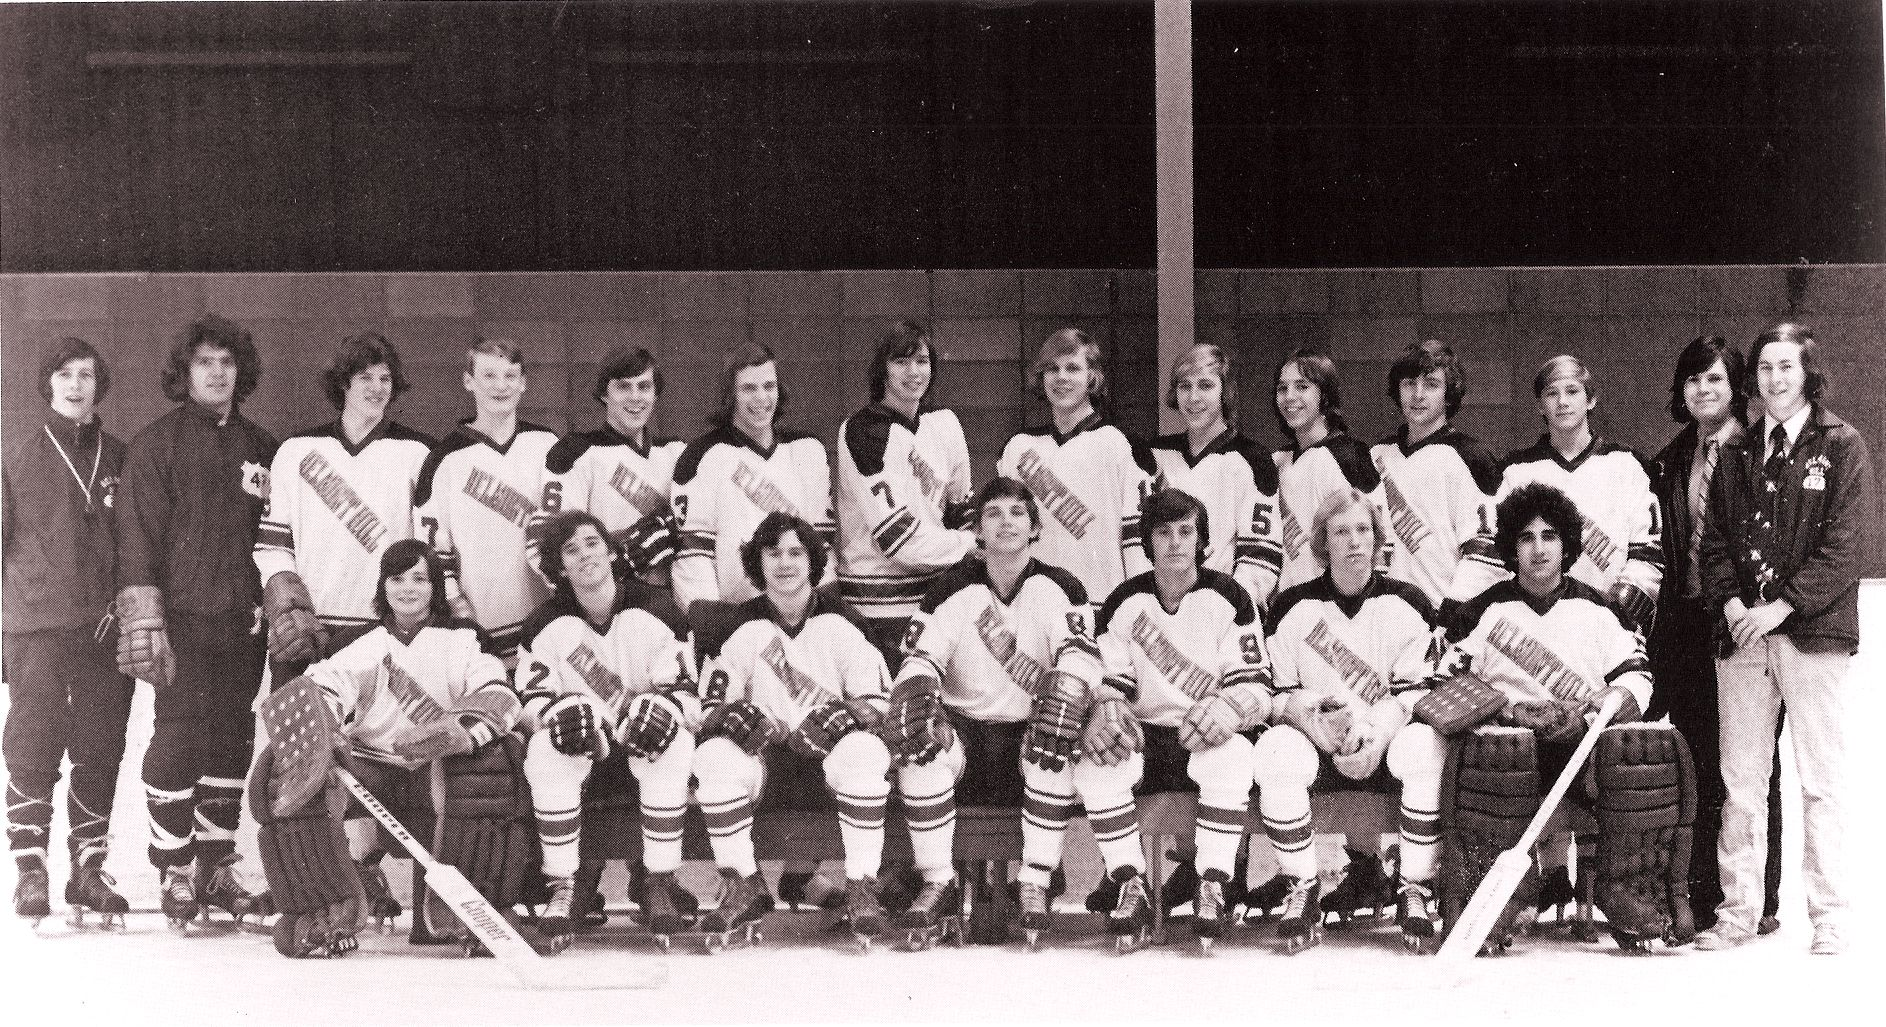 First Row: Freeman, Harvey, Finnerty, Lyons, Weeks, Dunphy, Wald Second Row; Mr. Martin, Mr. Clift, P. Kermond, Farrell, Milley, Mannix, D., Kelley, St. Leahy, Wiesentaner, M. Kelley, Collins, Casner, Ginn, Eaton